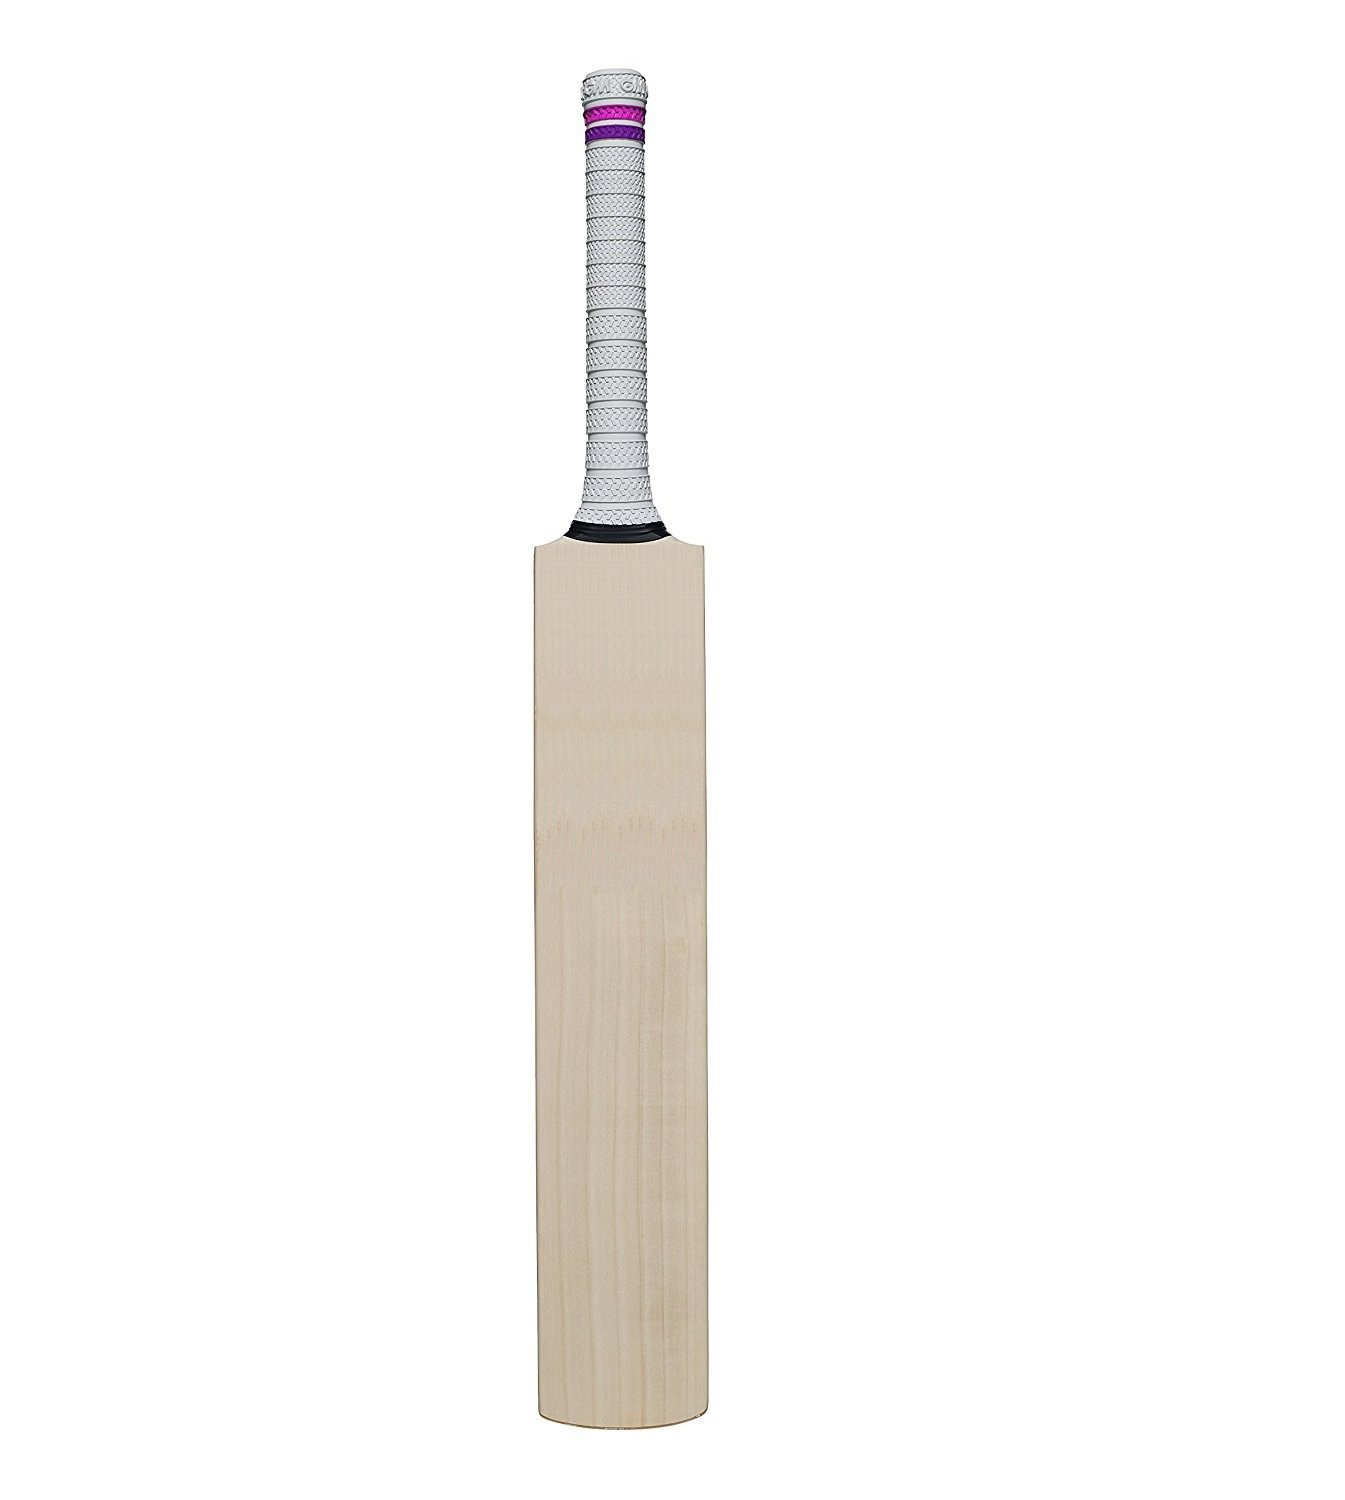 QUINERGYS Xtreme English Willow Cricket Bat